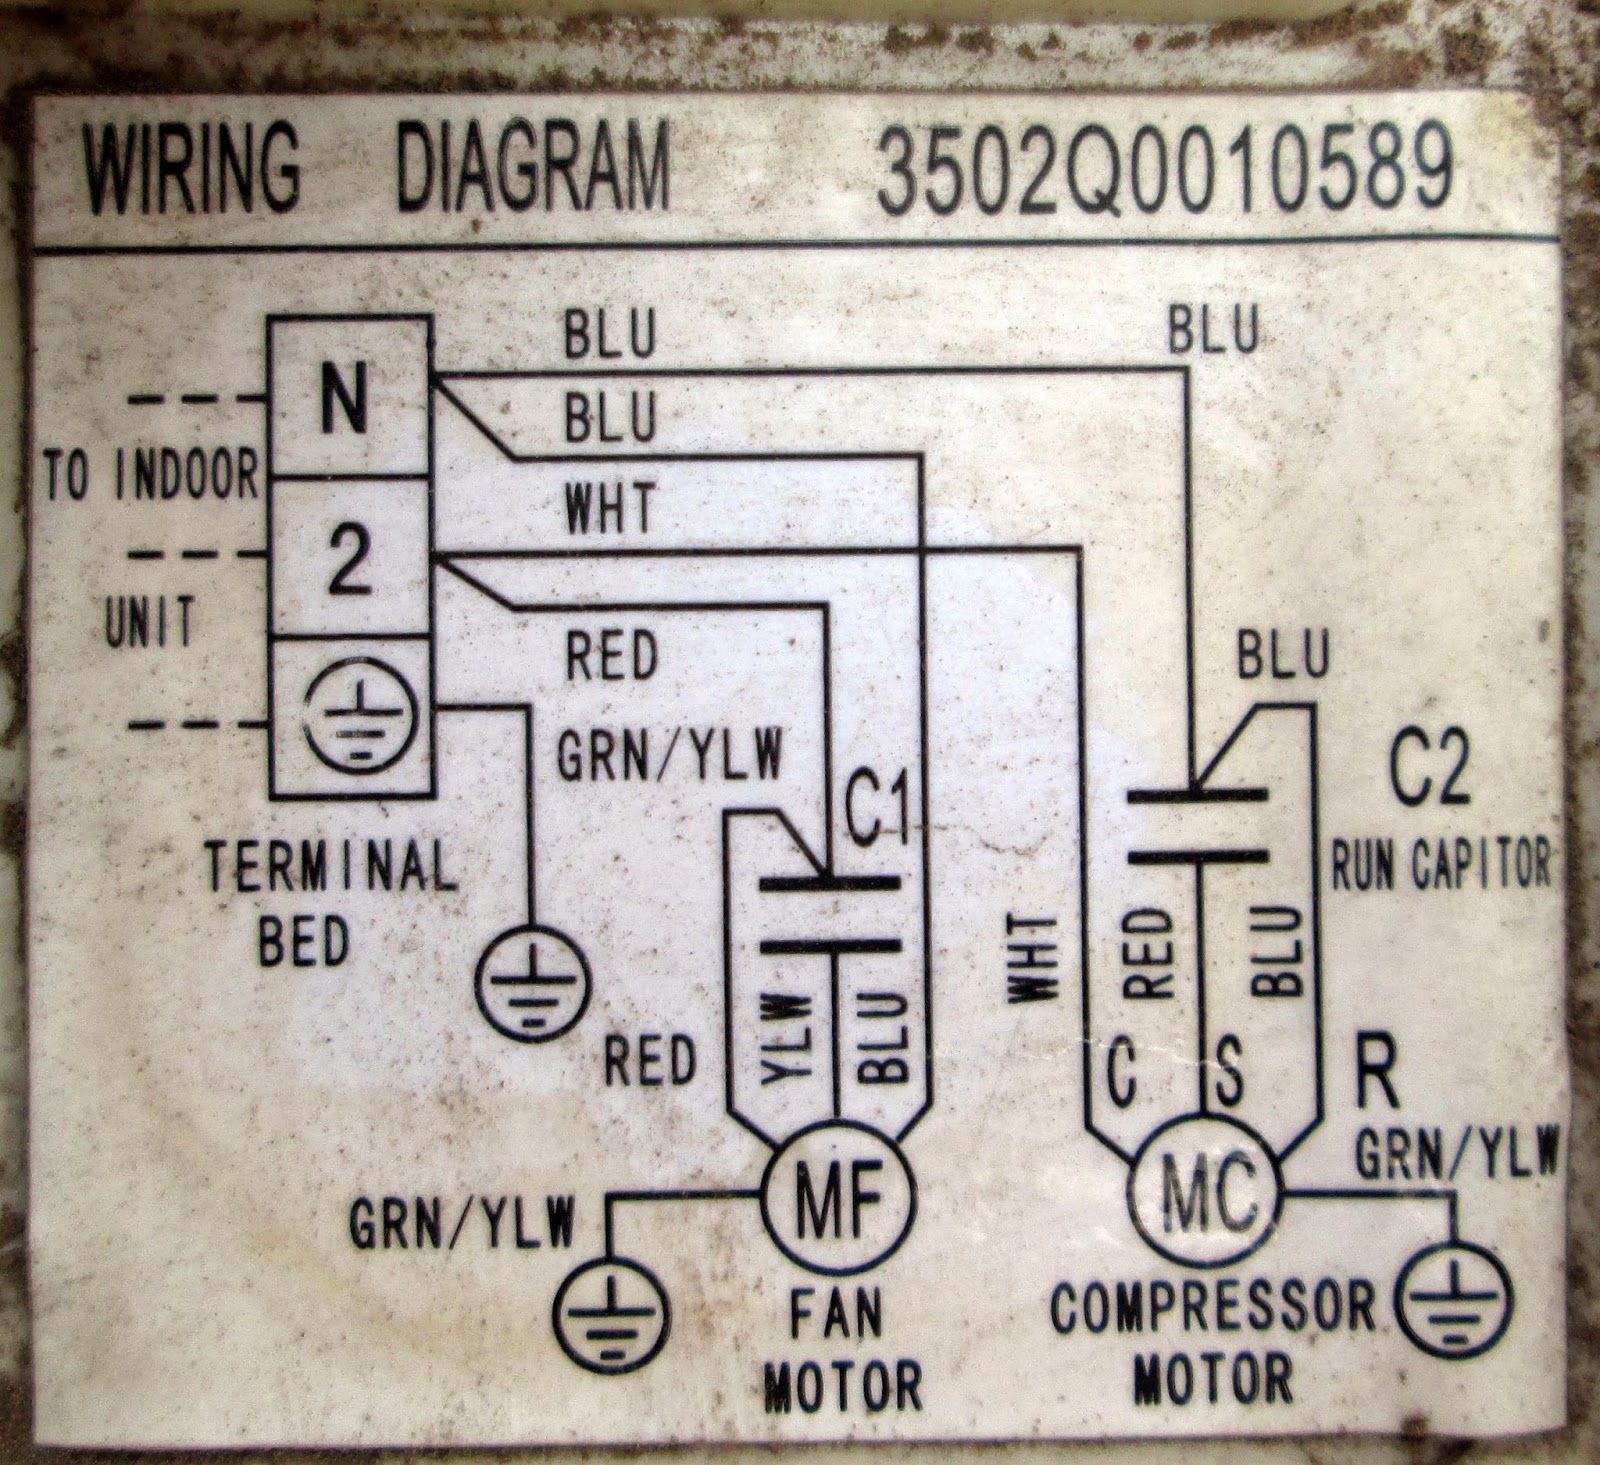 Wiring diagram ac split sharp service ac kota serang baru diagram kelistrikan ac split cheapraybanclubmaster Image collections